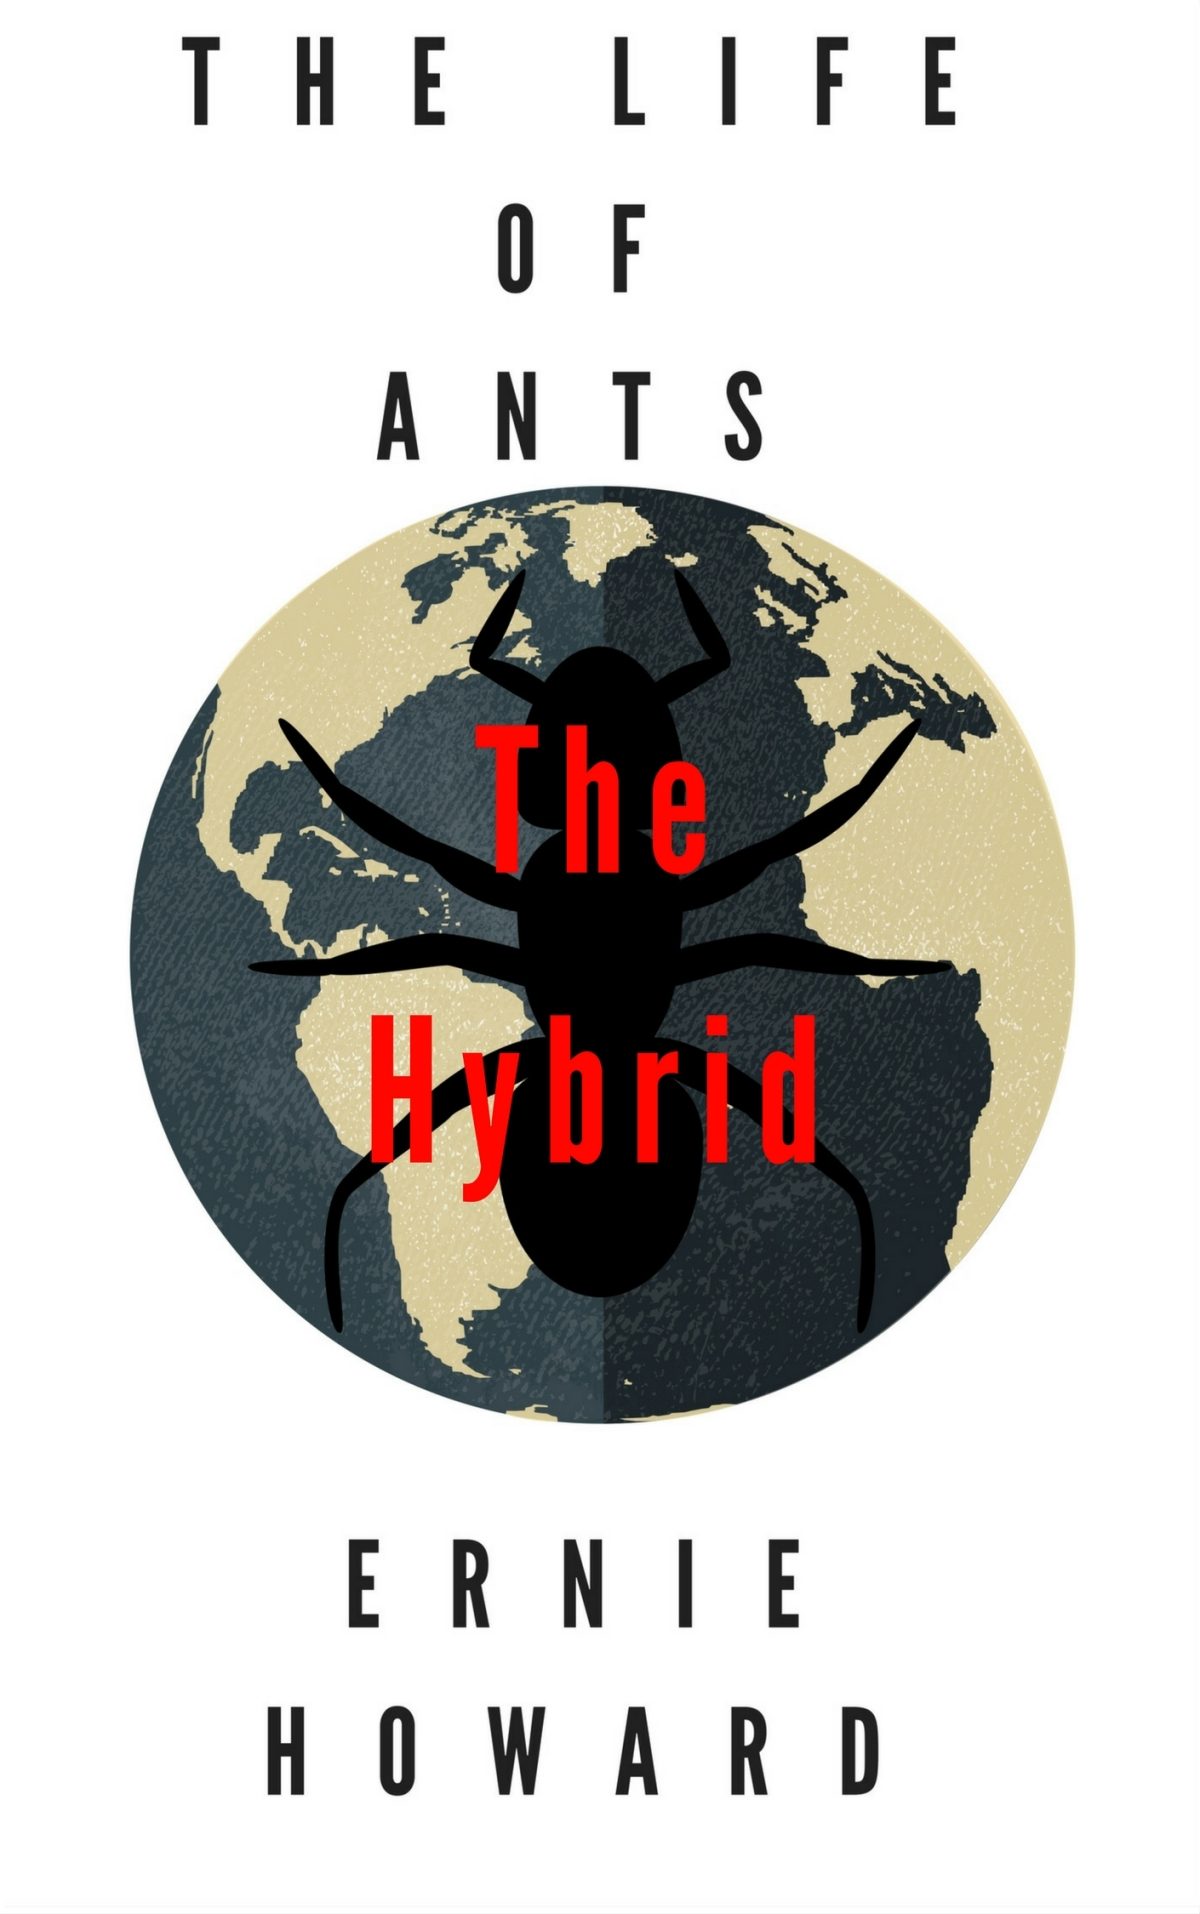 Sample from The Life of Ants, The Hybrid